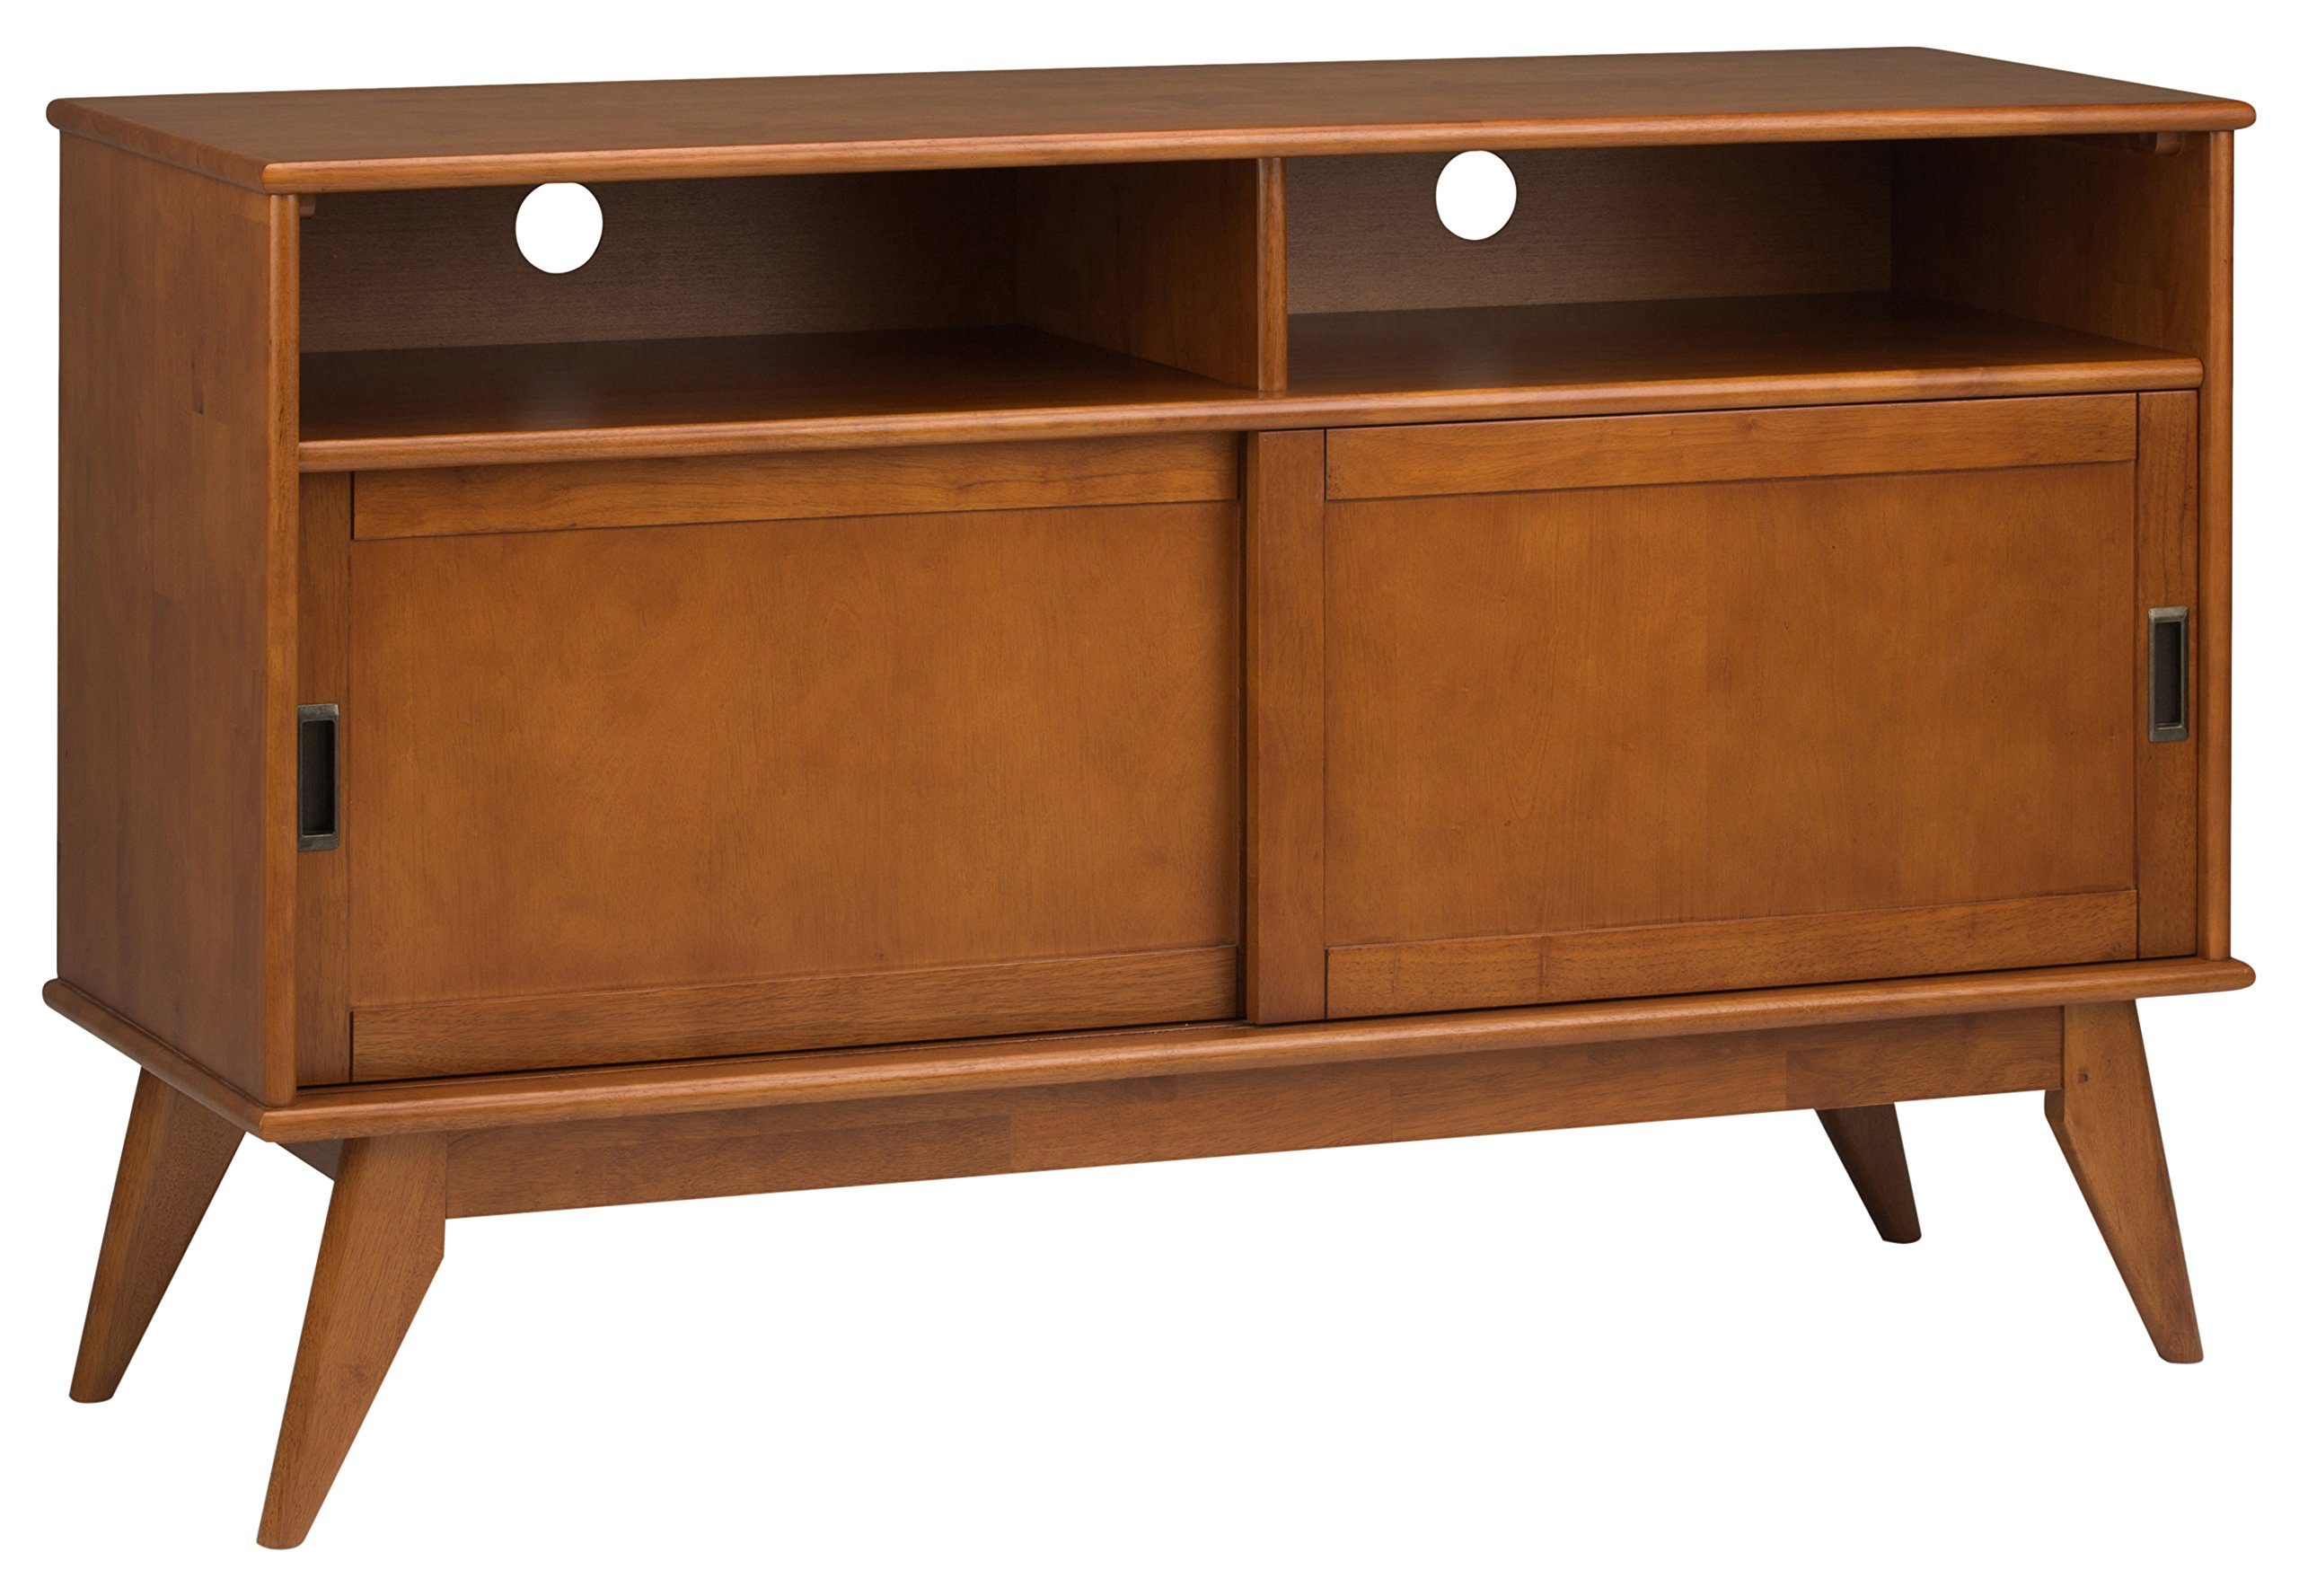 Simpli Home 3AXCDRP-09-TK Draper Solid Hardwood 54 inch wide Mid Century Modern TV media Stand in Teak Brown For TVs up to 60 inches by Simpli Home